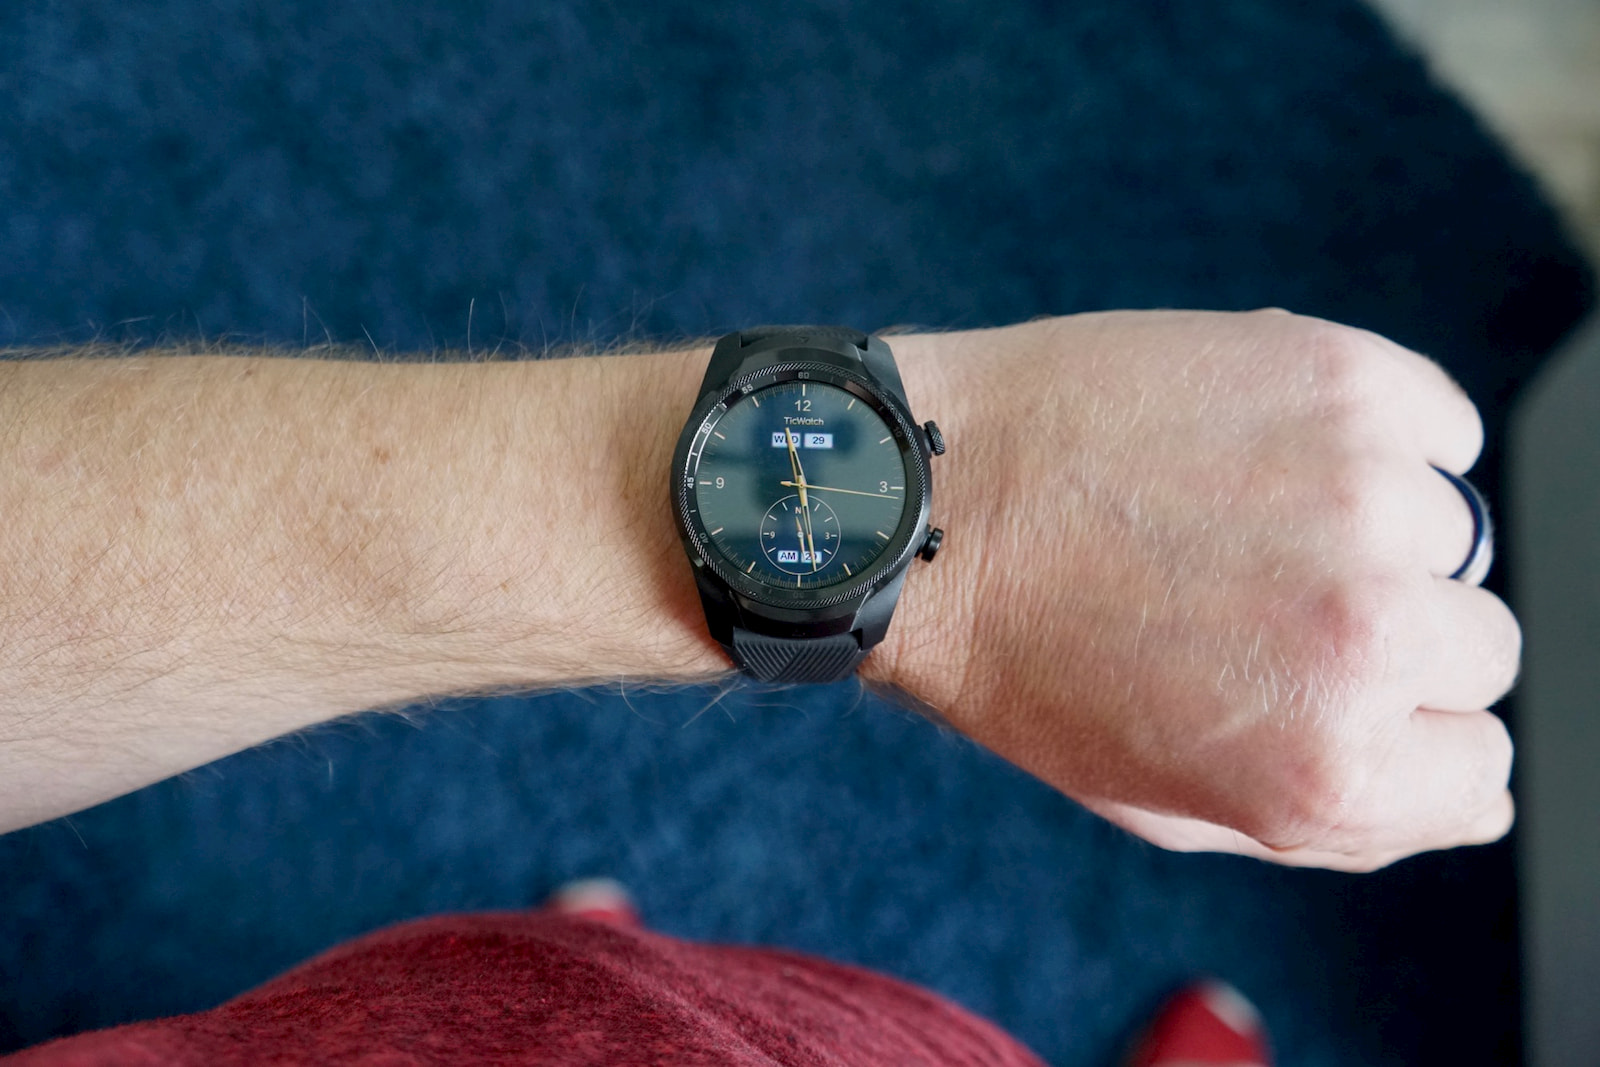 [Updated] TicWatch Pro LTE review: The WearOS smartwatch for the masses [VIDEO]